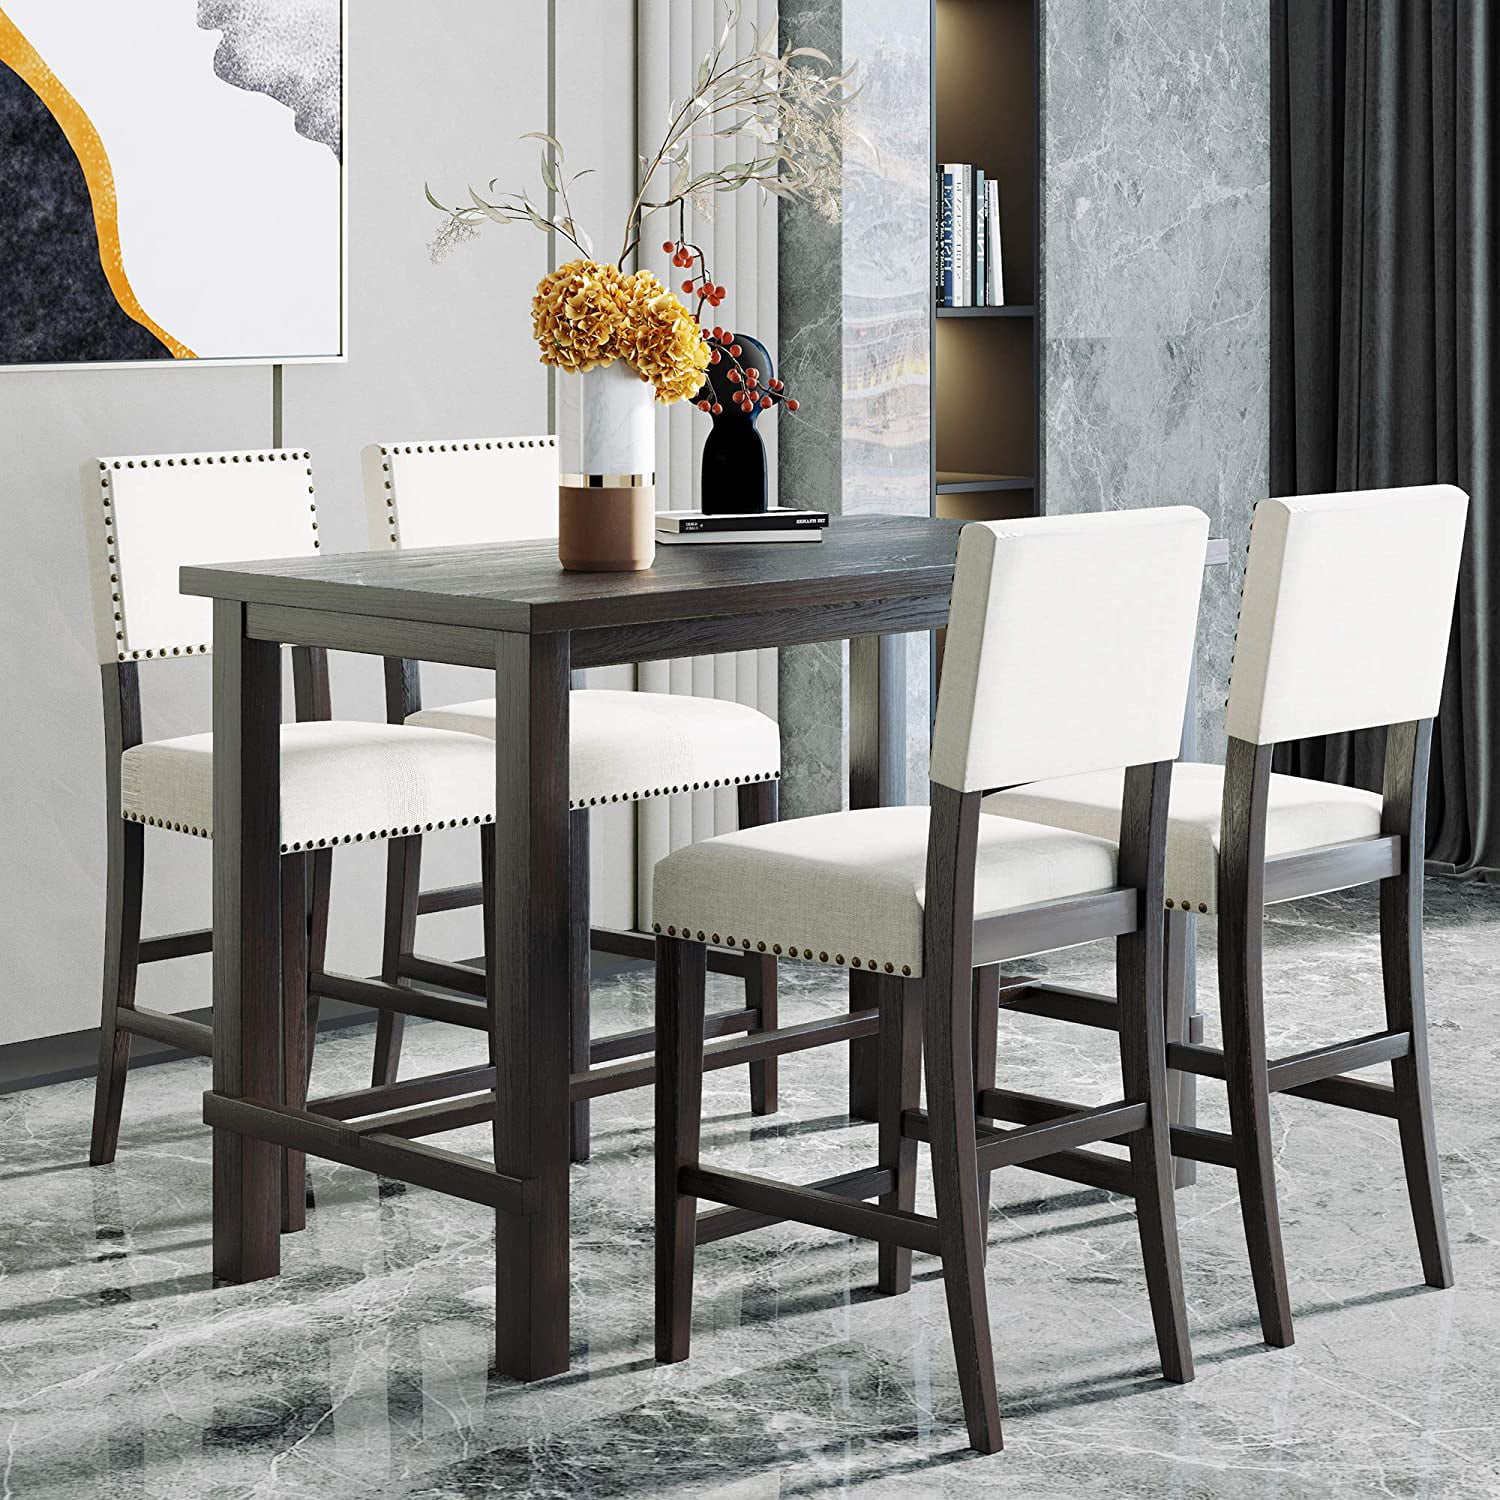 9 Piece Dining Table Set Counter Height Dining Set with Classic Elegant  Rectangel Table and 9 Padded Chairs for Kitchen Dining Room,Black and Beige    ...